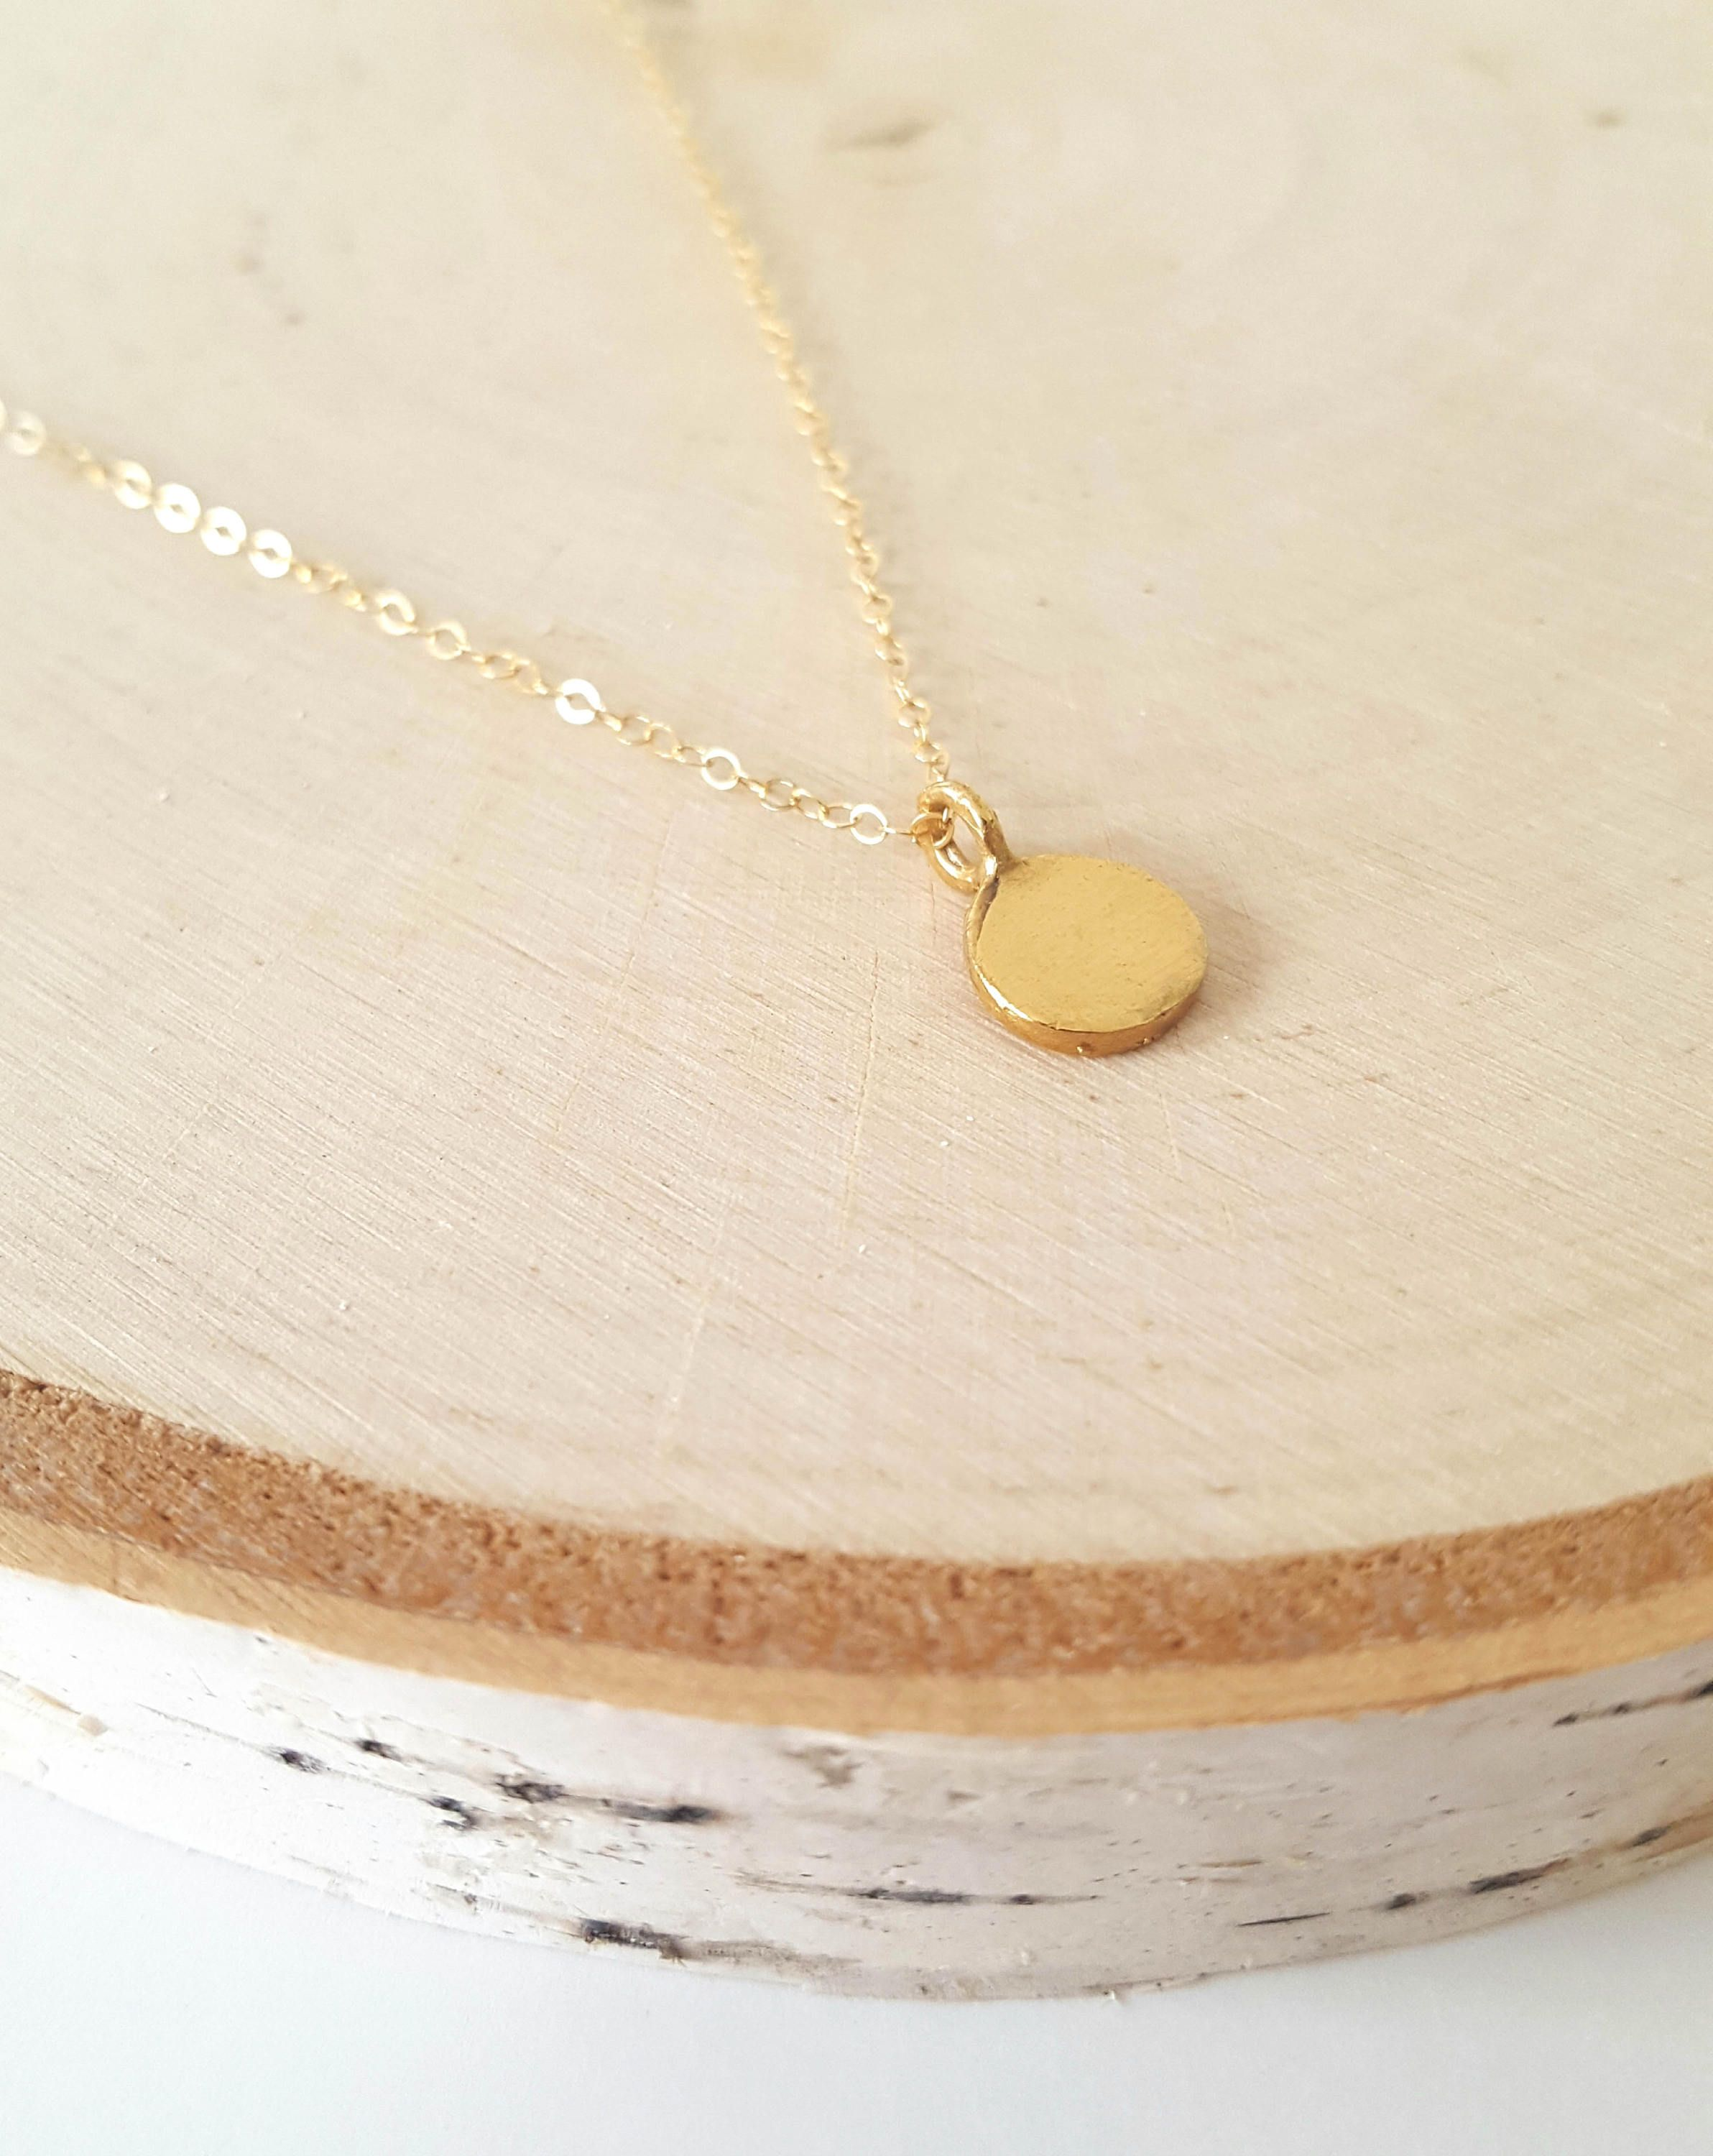 Gold disc necklace gold disc pendant gold layered necklace gold this everyday small gold pendant necklace is a beautiful and simple layering piece that you aloadofball Image collections